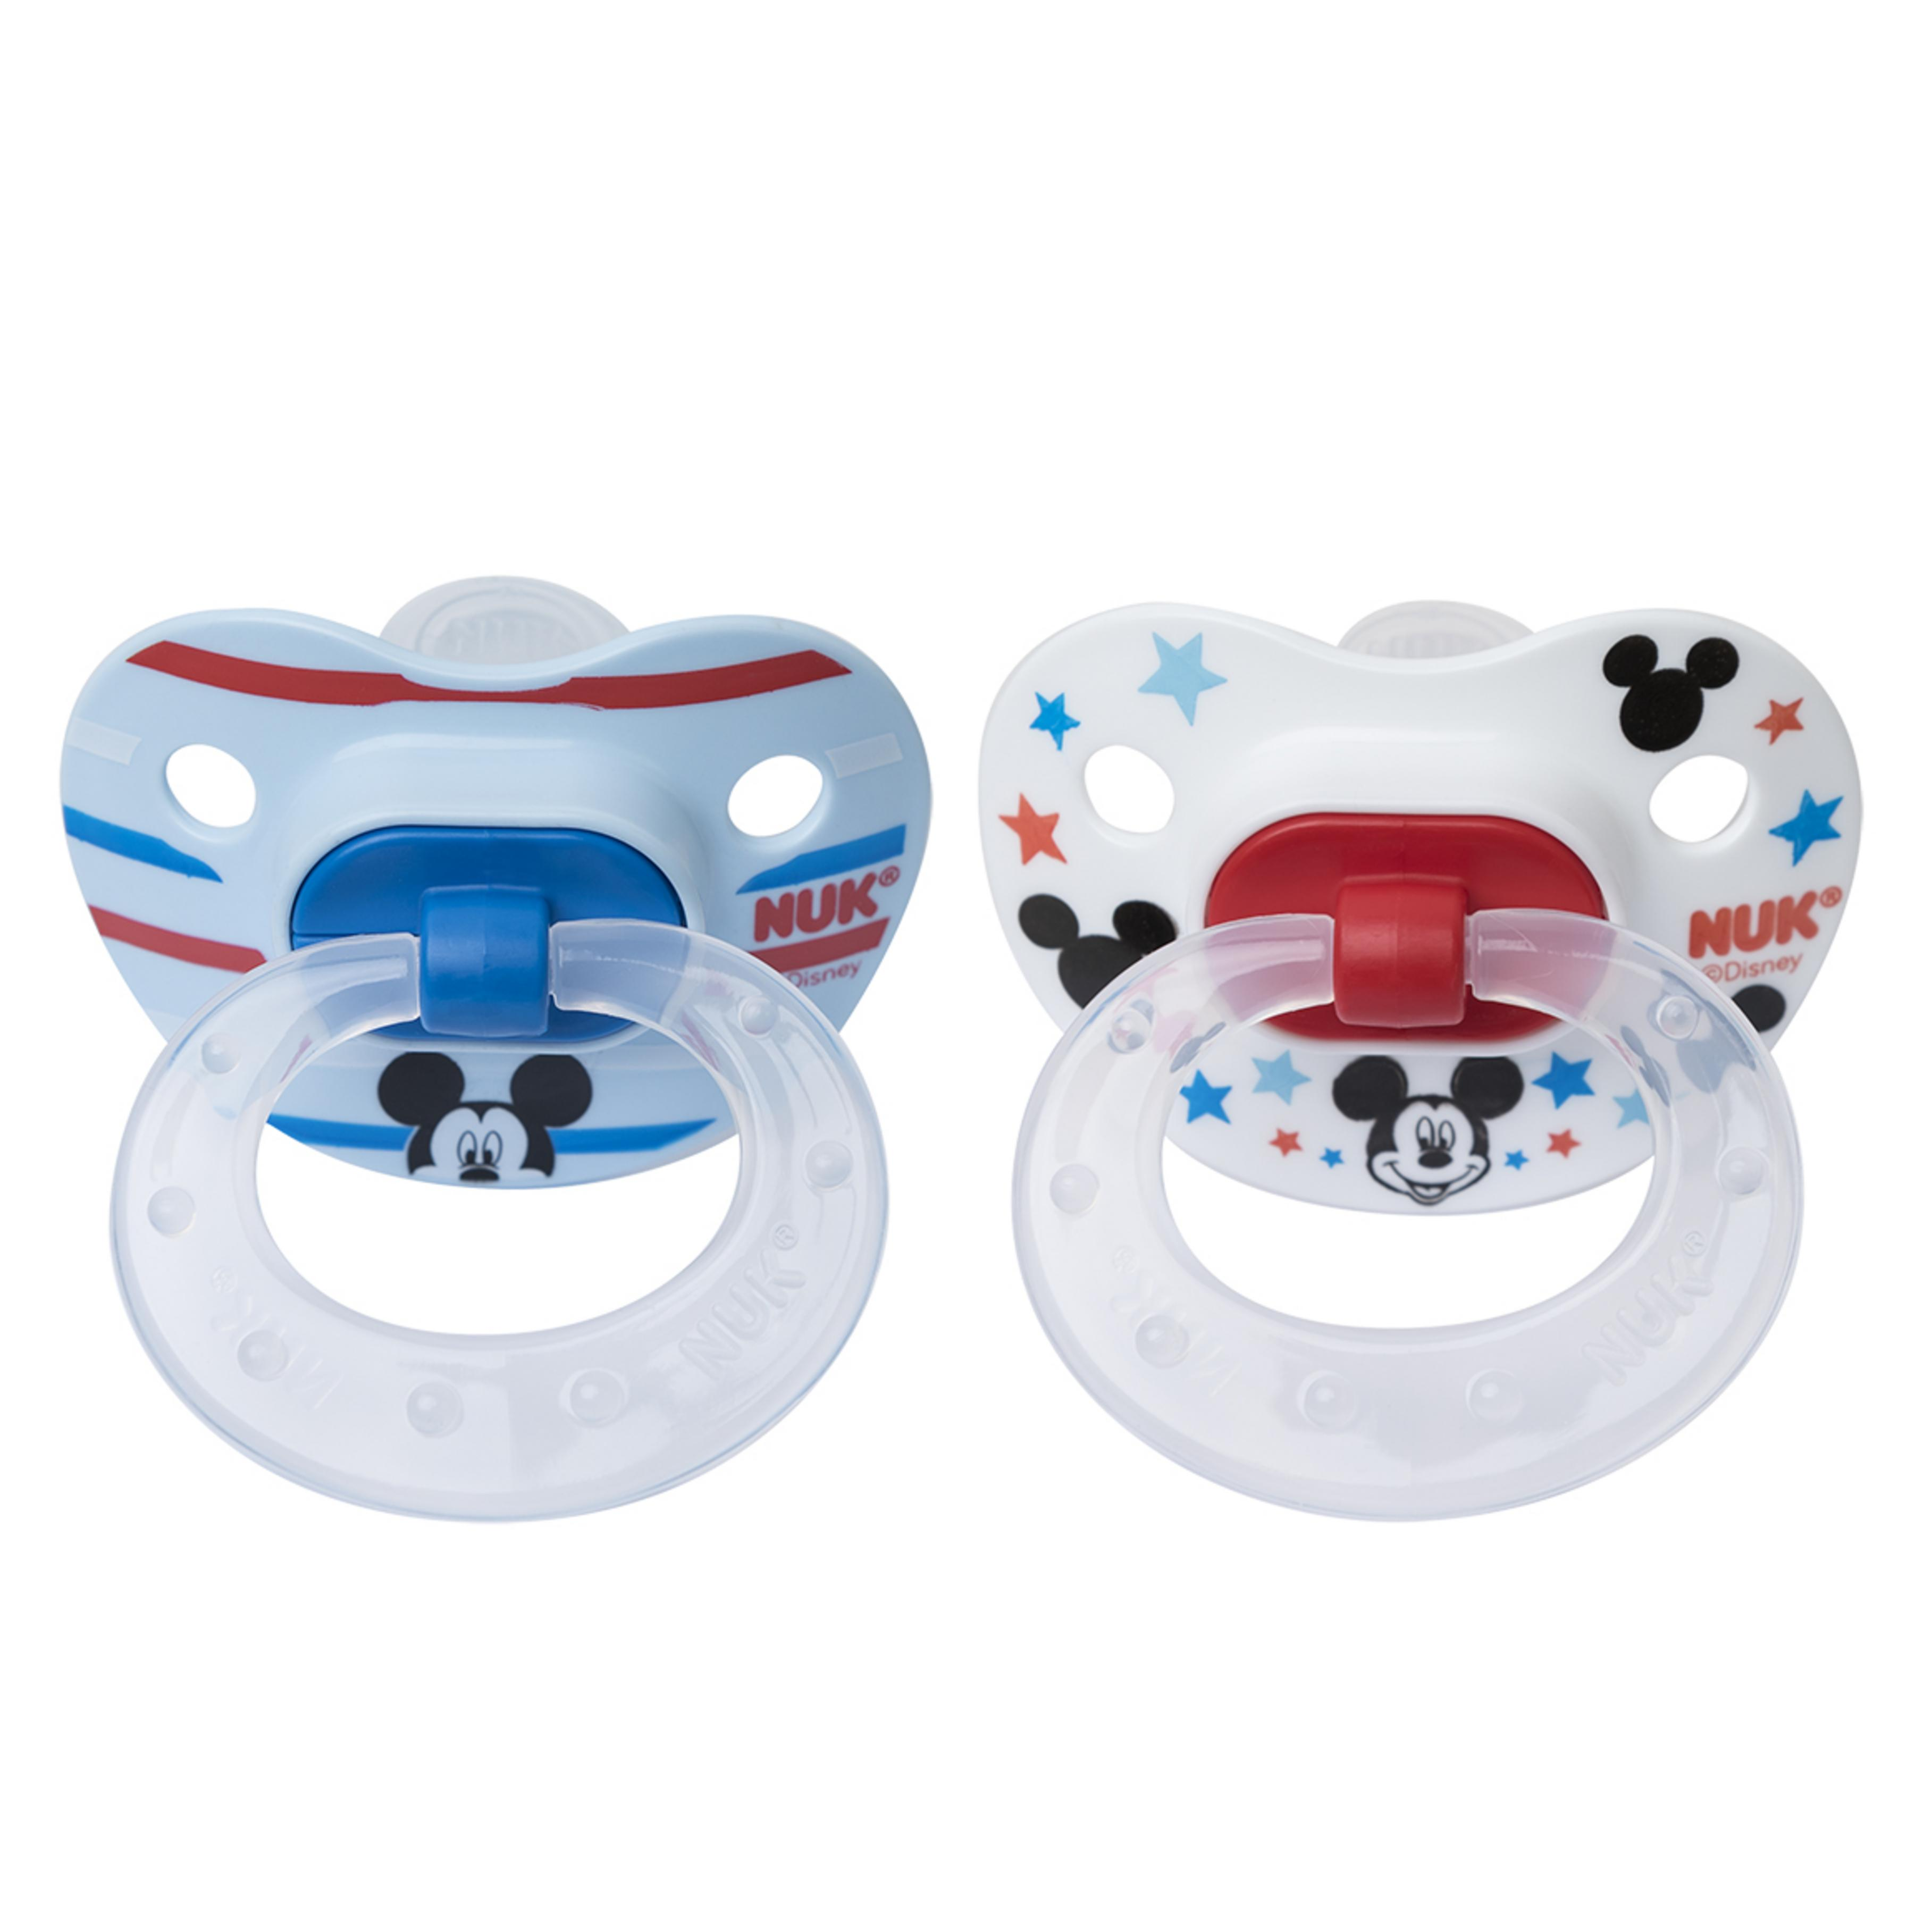 Nuk Disney Baby Orthodontic Pacifier 0-6m - 2 CT